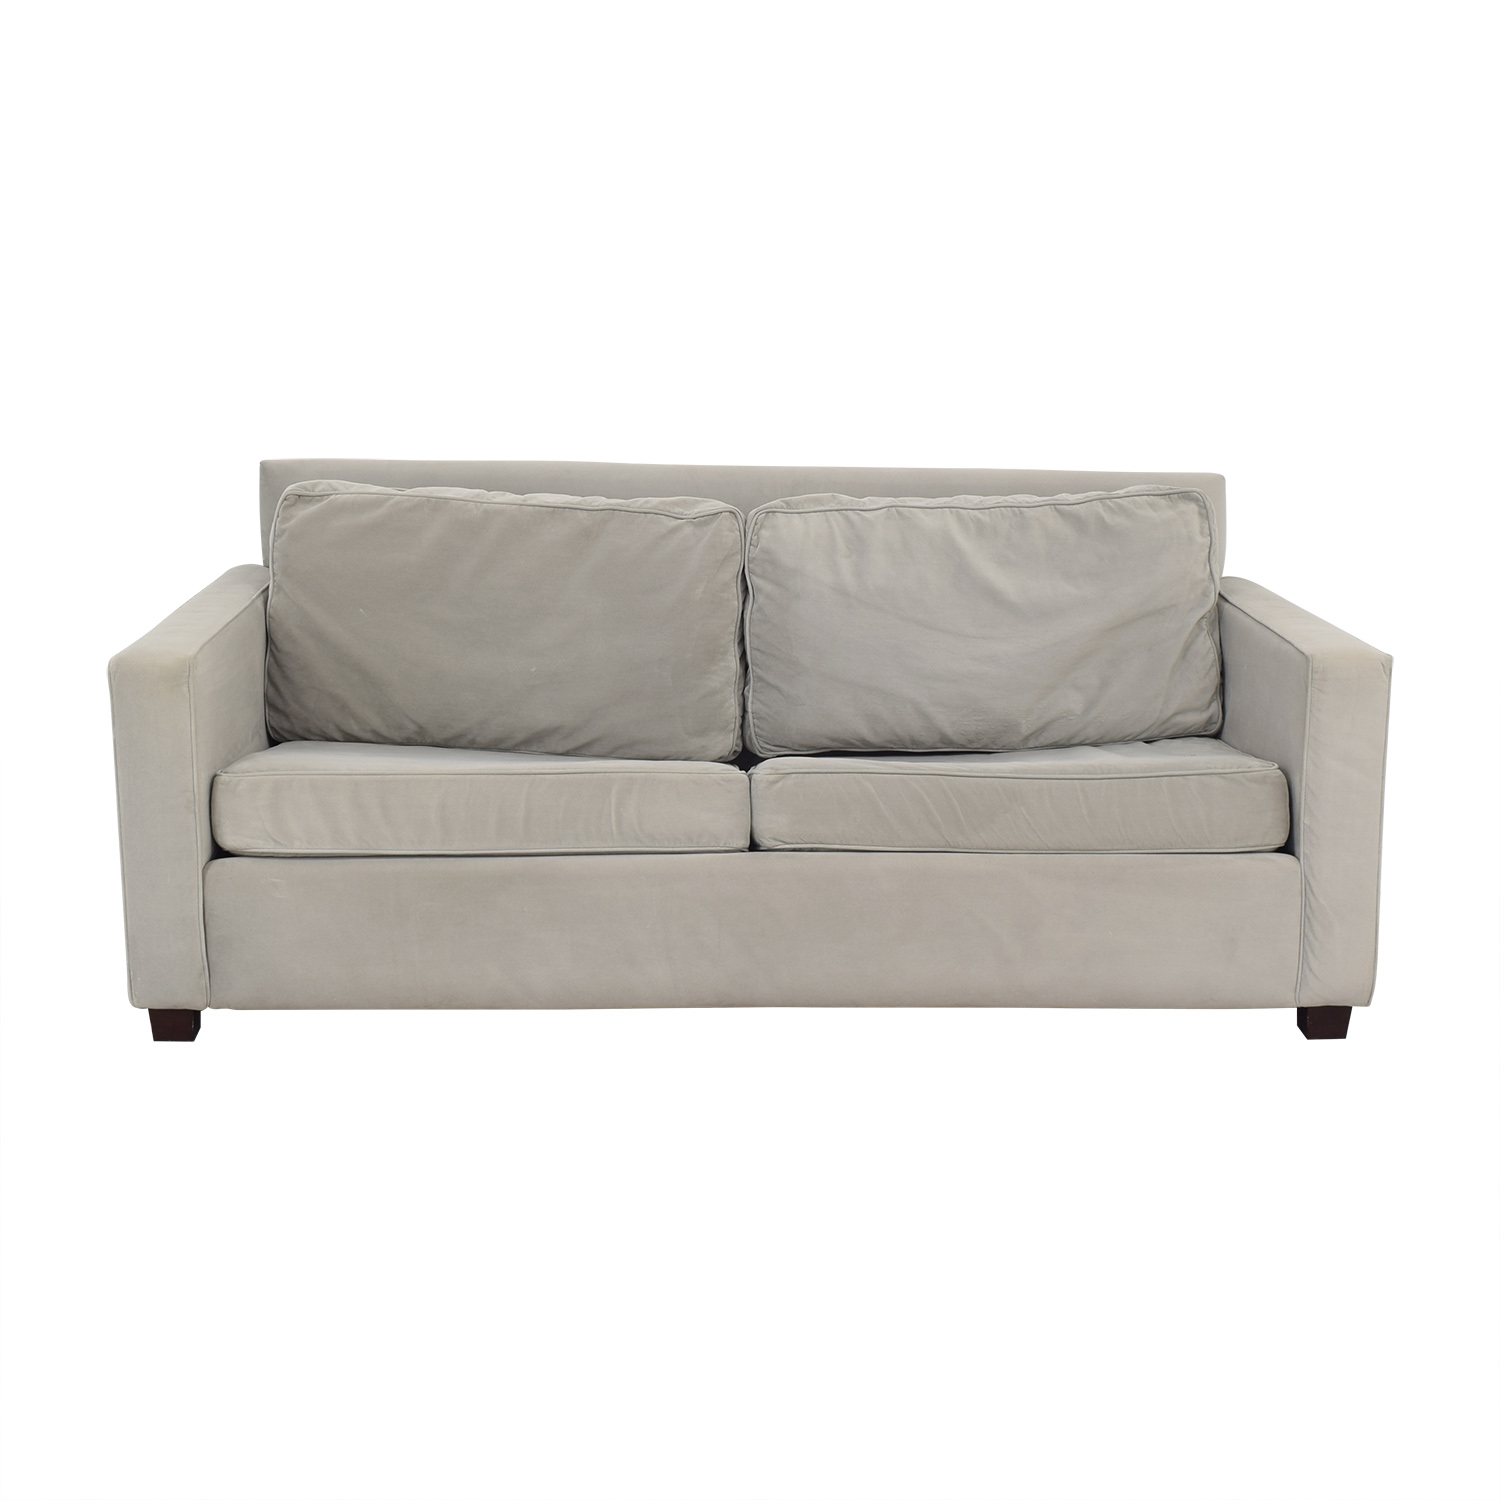 buy West Elm West Elm Henry Basic Queen Sleeper Sofa online